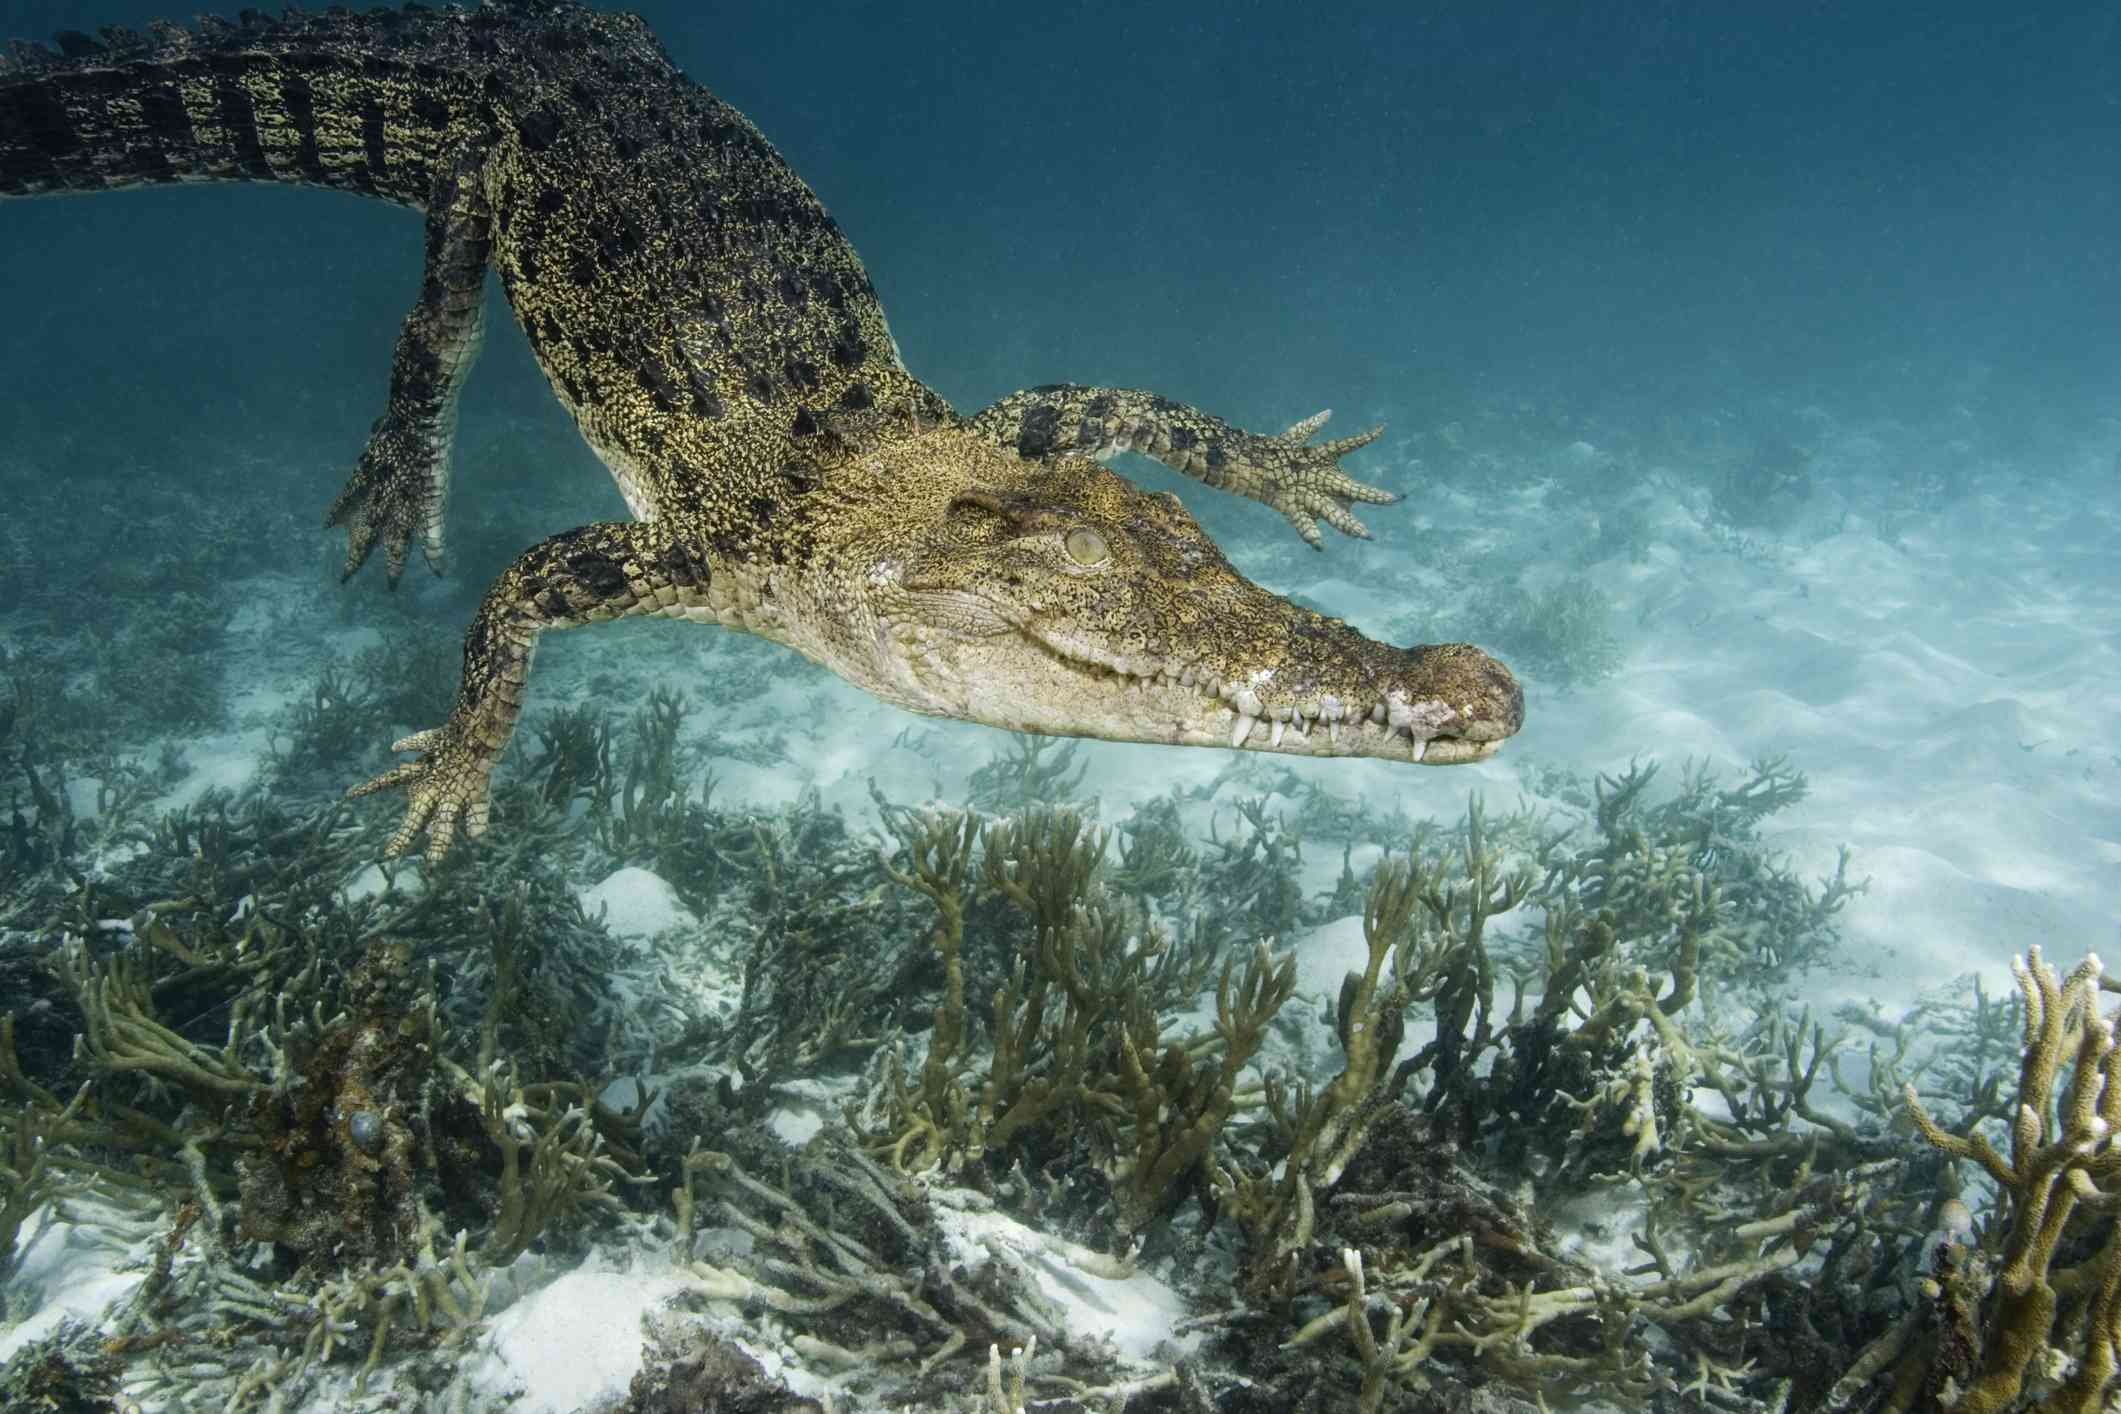 Saltwater crocodile swimming underwater over some coral